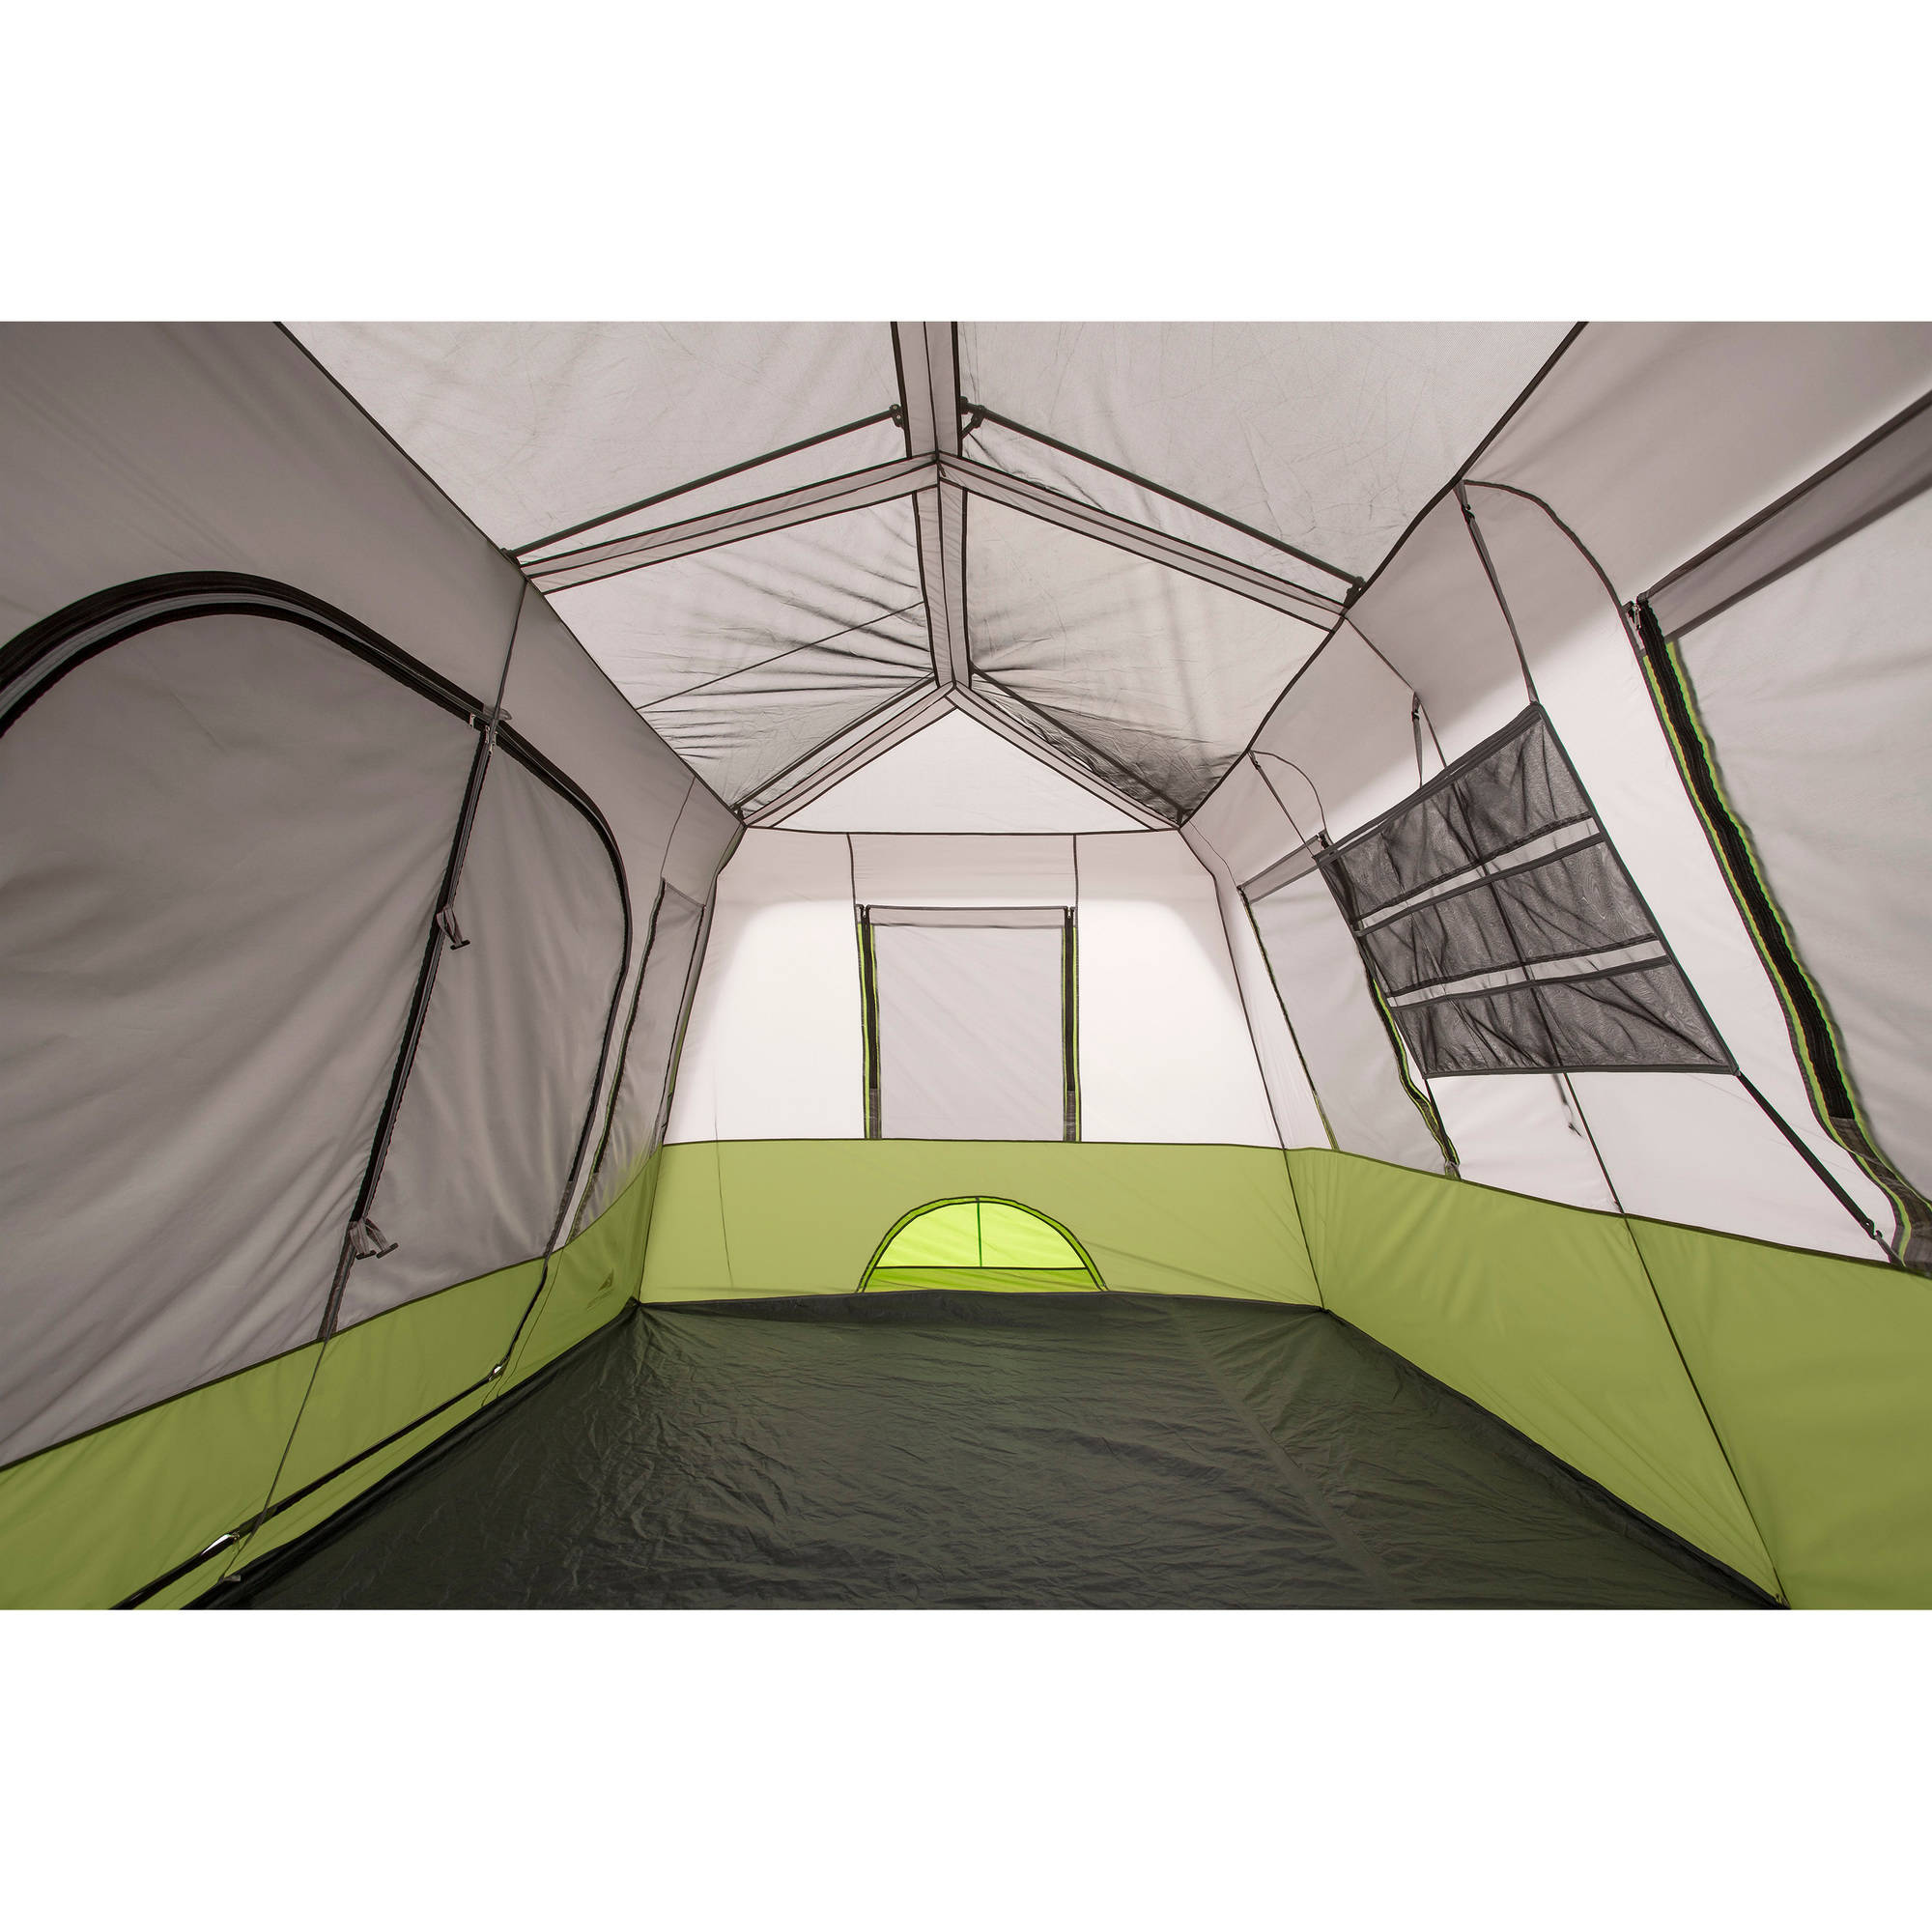 Ozark Trail 9 Person 2 Room Instant Cabin Tent with Screen Room - Walmart.com  sc 1 st  Walmart : tents easy to put up - memphite.com